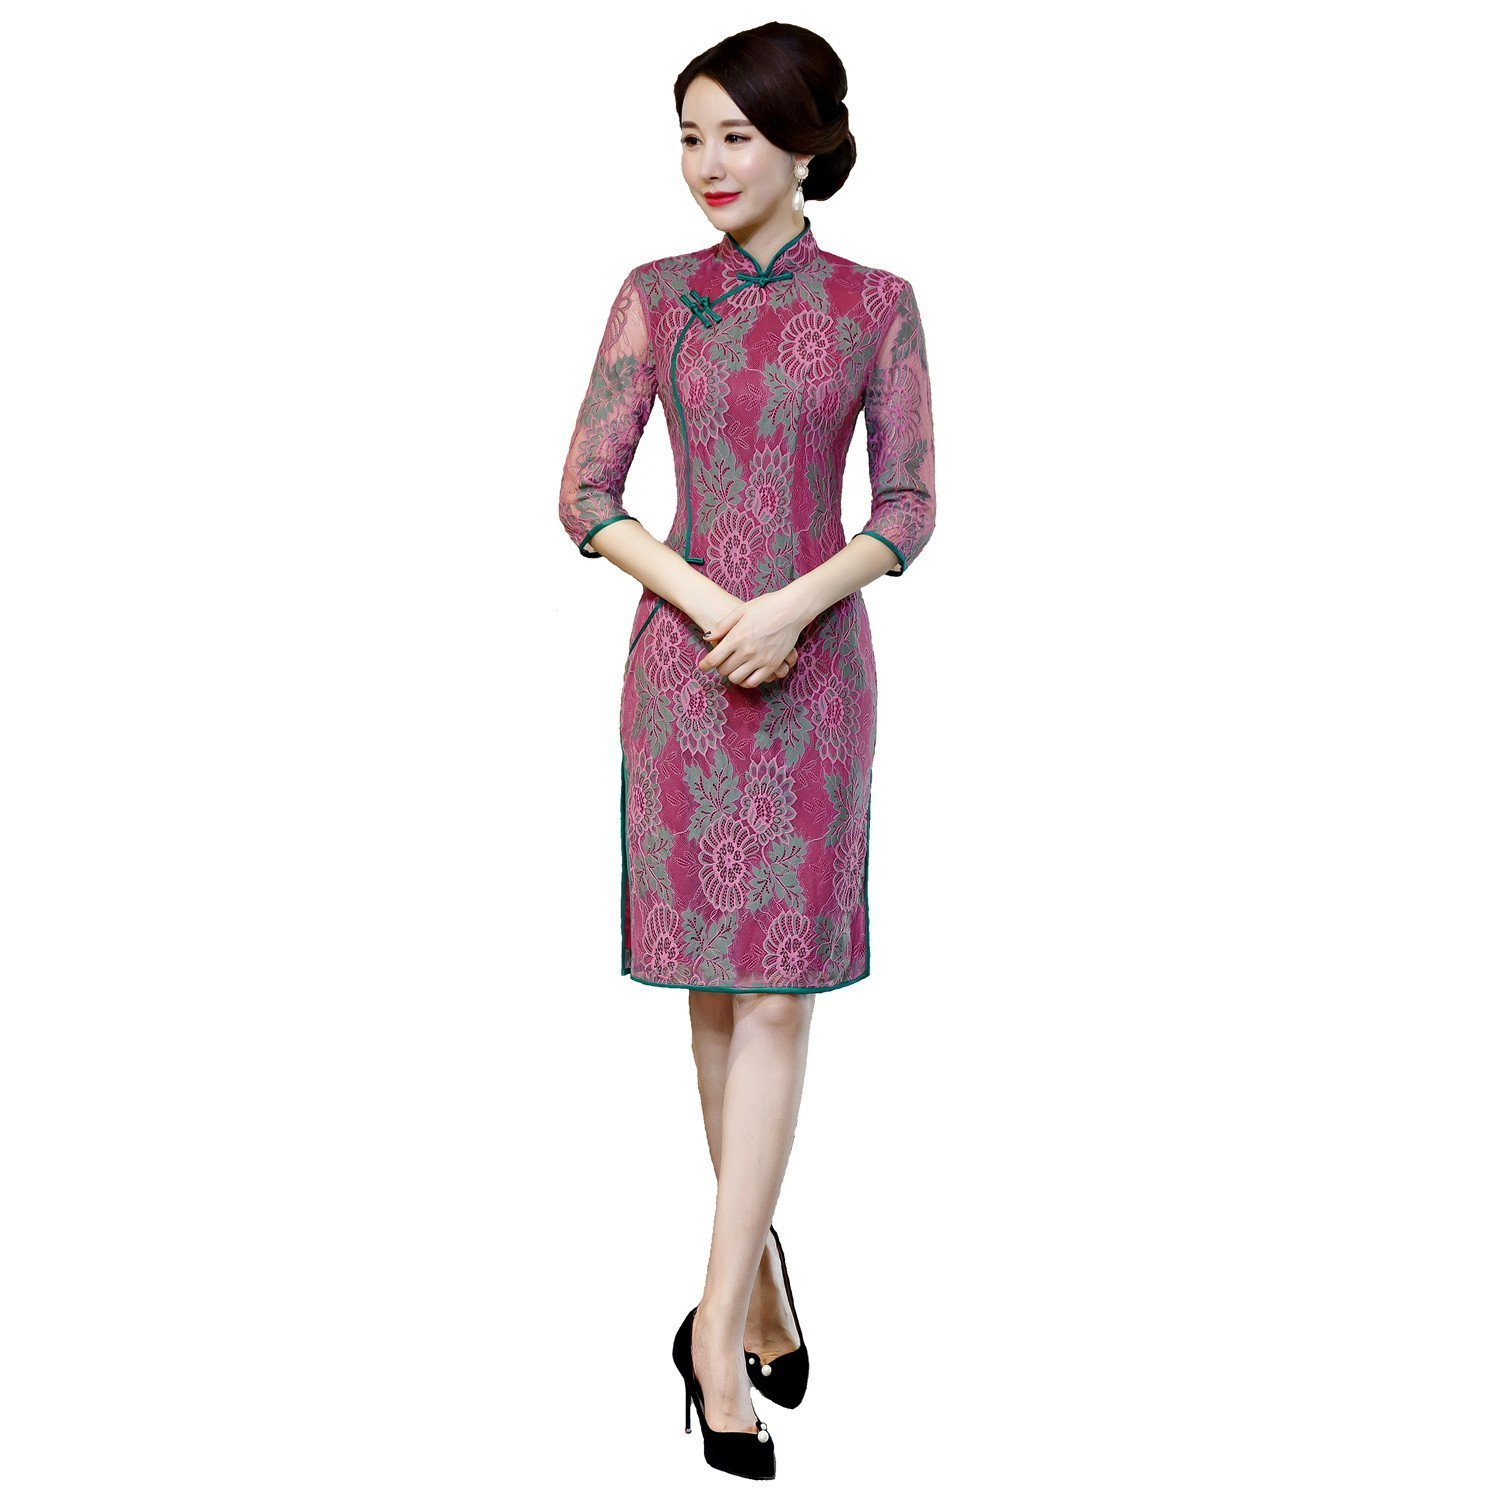 b9260a3dd85 Shanghai Story Half Sleeve Knee Length Chinese Cheongsam Dress Lace Qipao  FMS2016720168